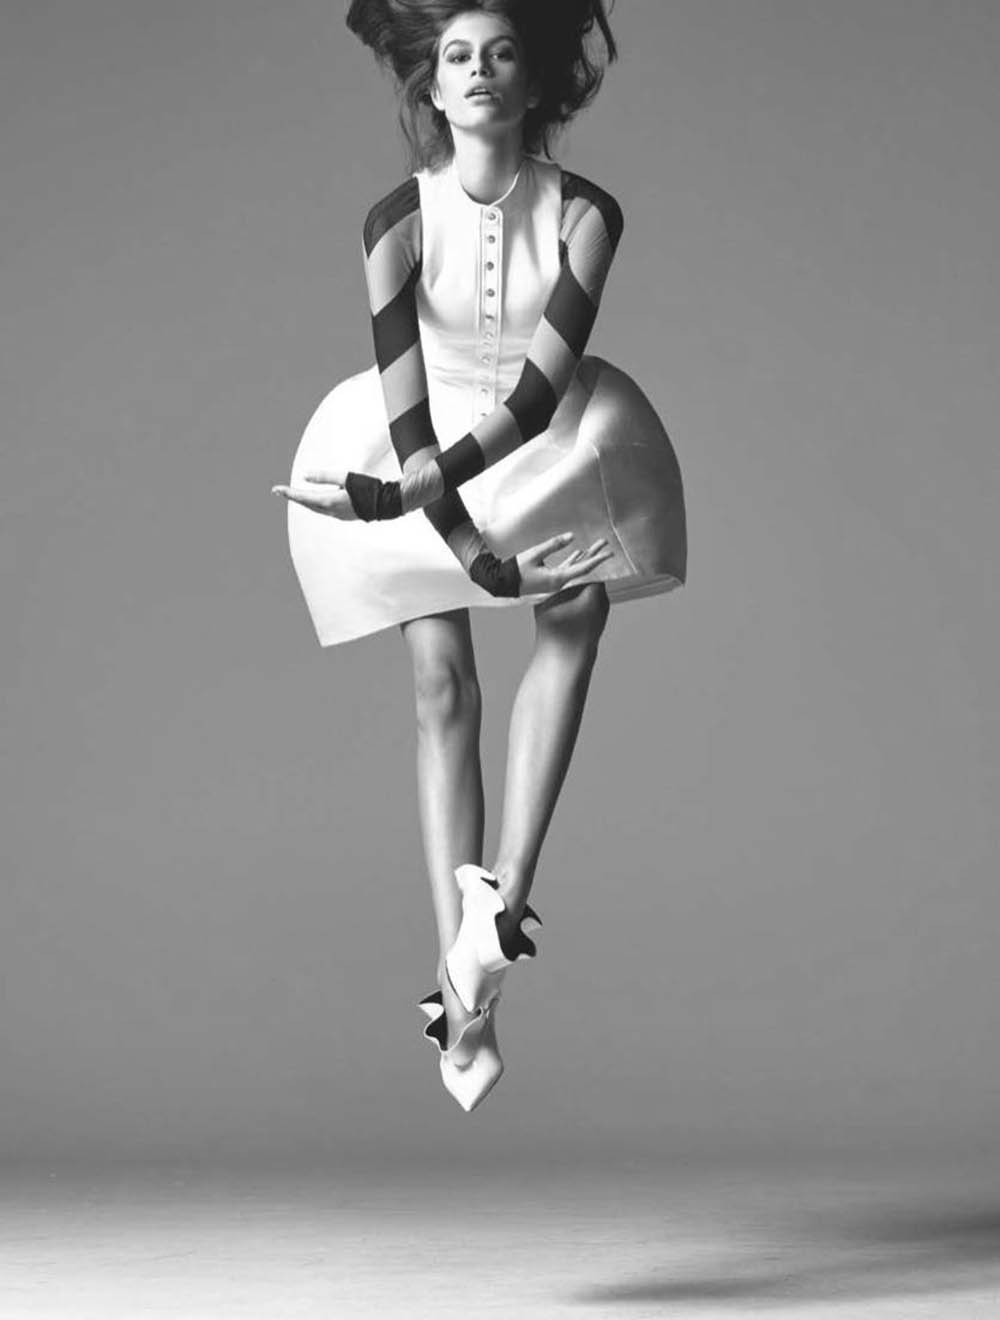 Kaia Gerber by Steven Meisel for British Vogue March 2018